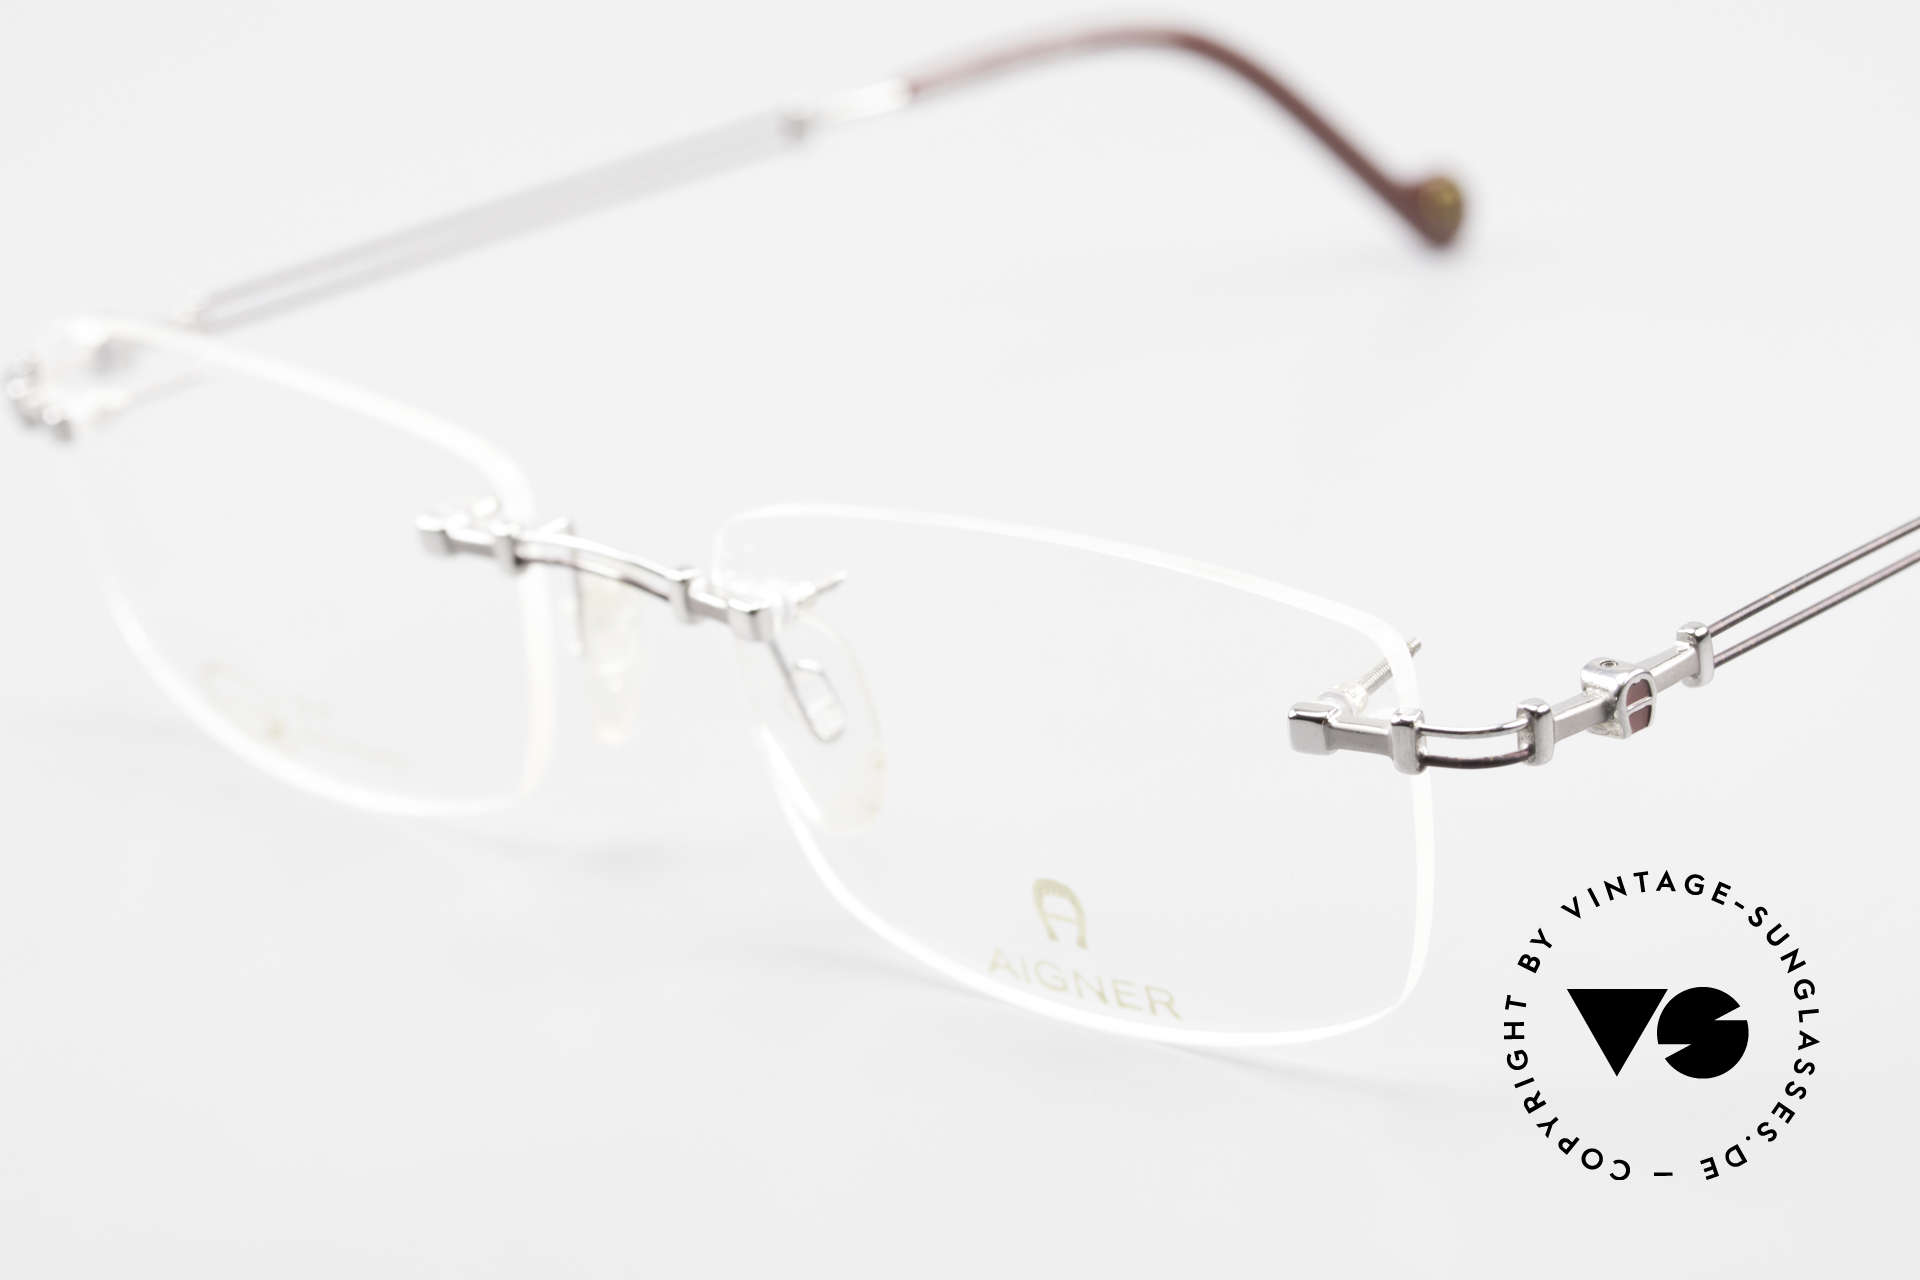 Aigner EA498 Rimless Vintage Glasses 90's, allergy-free and 18kt gold-plated parts; made in Germany, Made for Men and Women